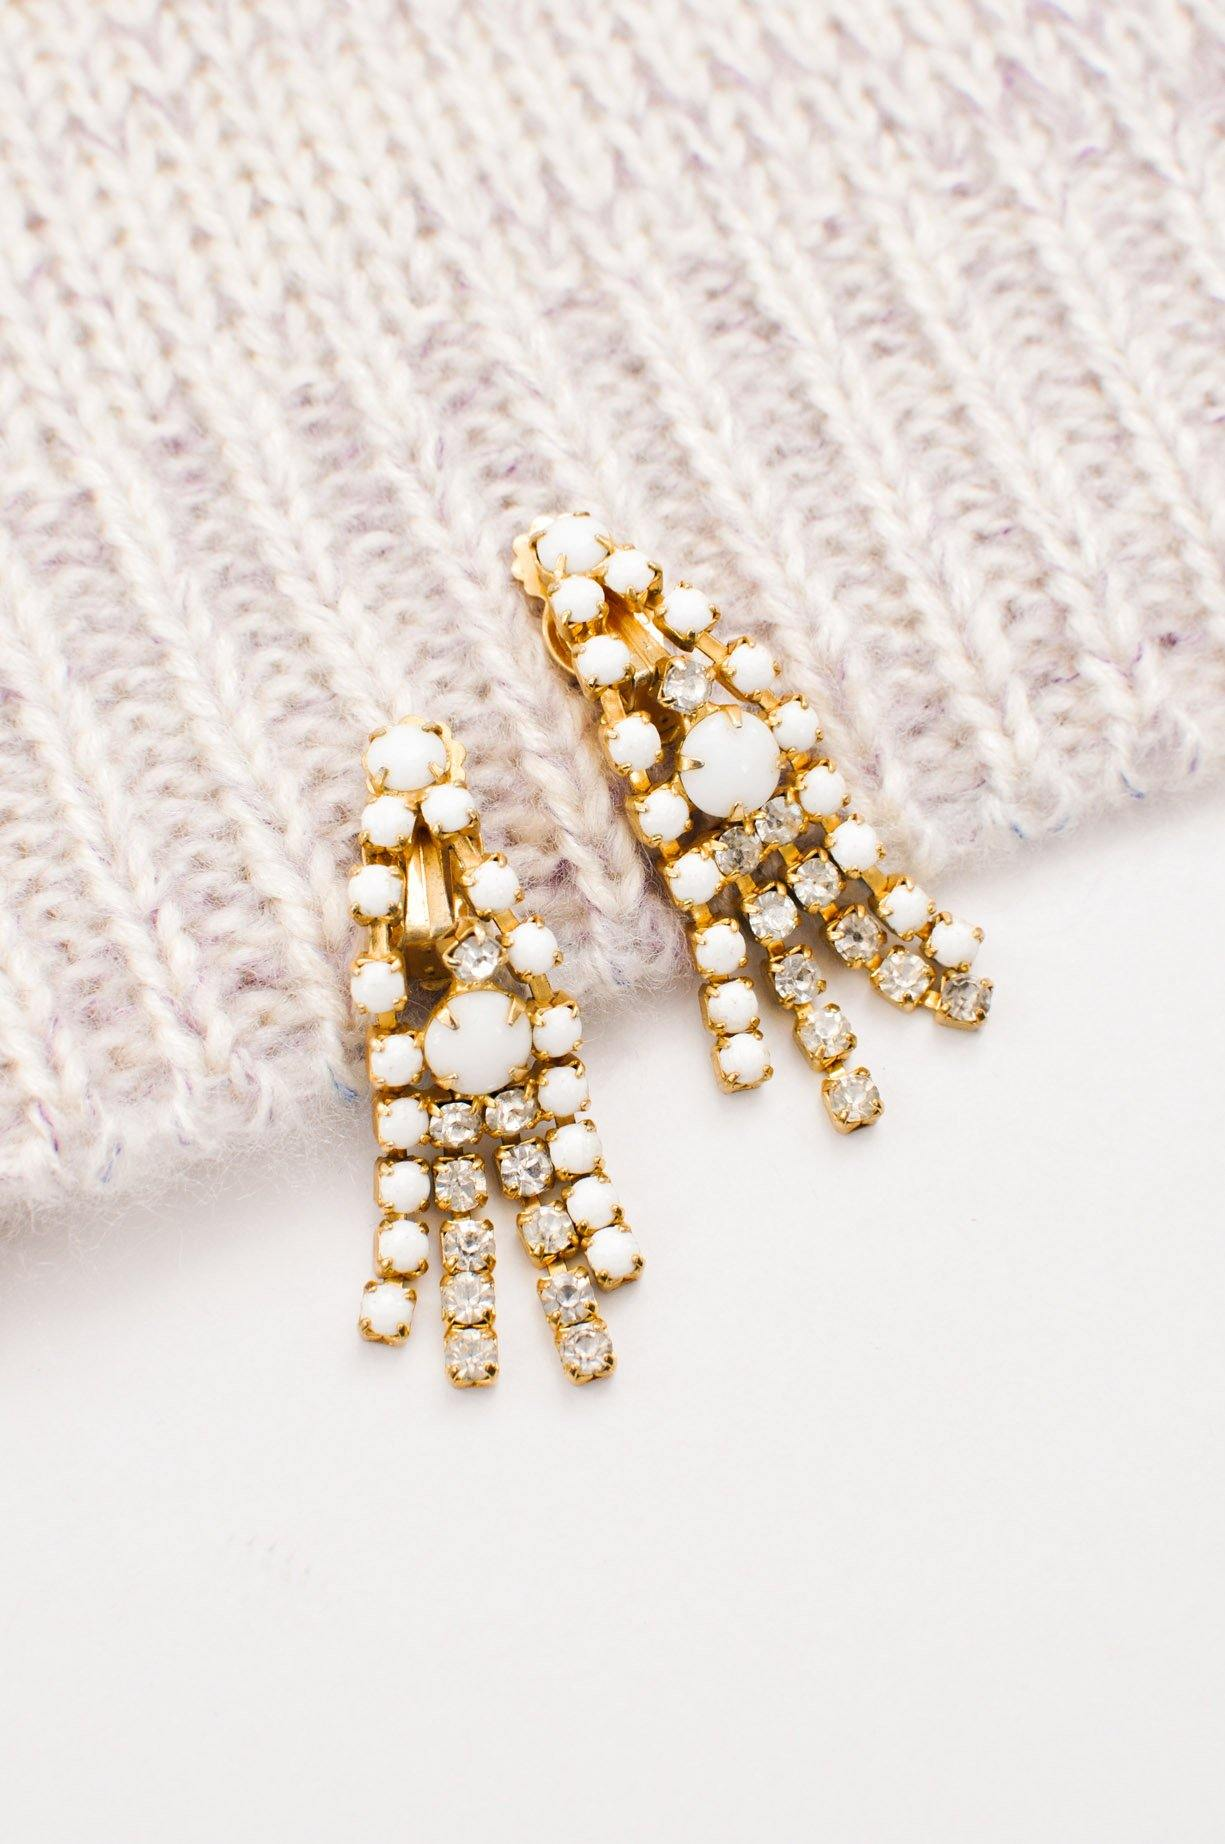 White Rhinestone Fringe Clip-on Earrings